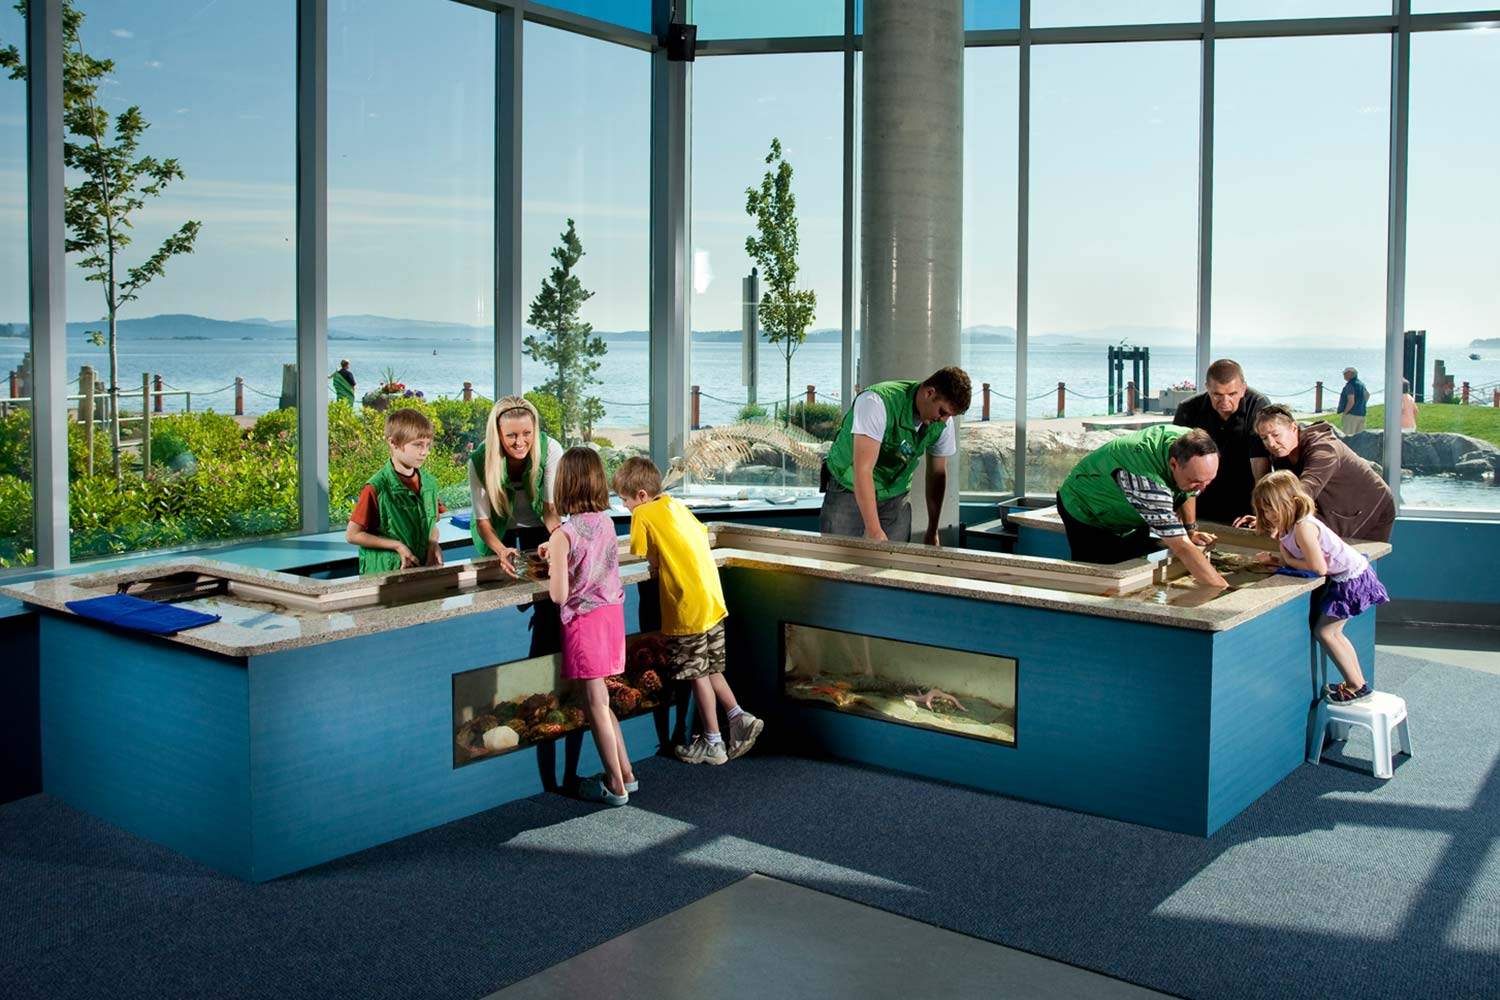 School Programs In Sidney The Salish Sea And Greater Victoria BC